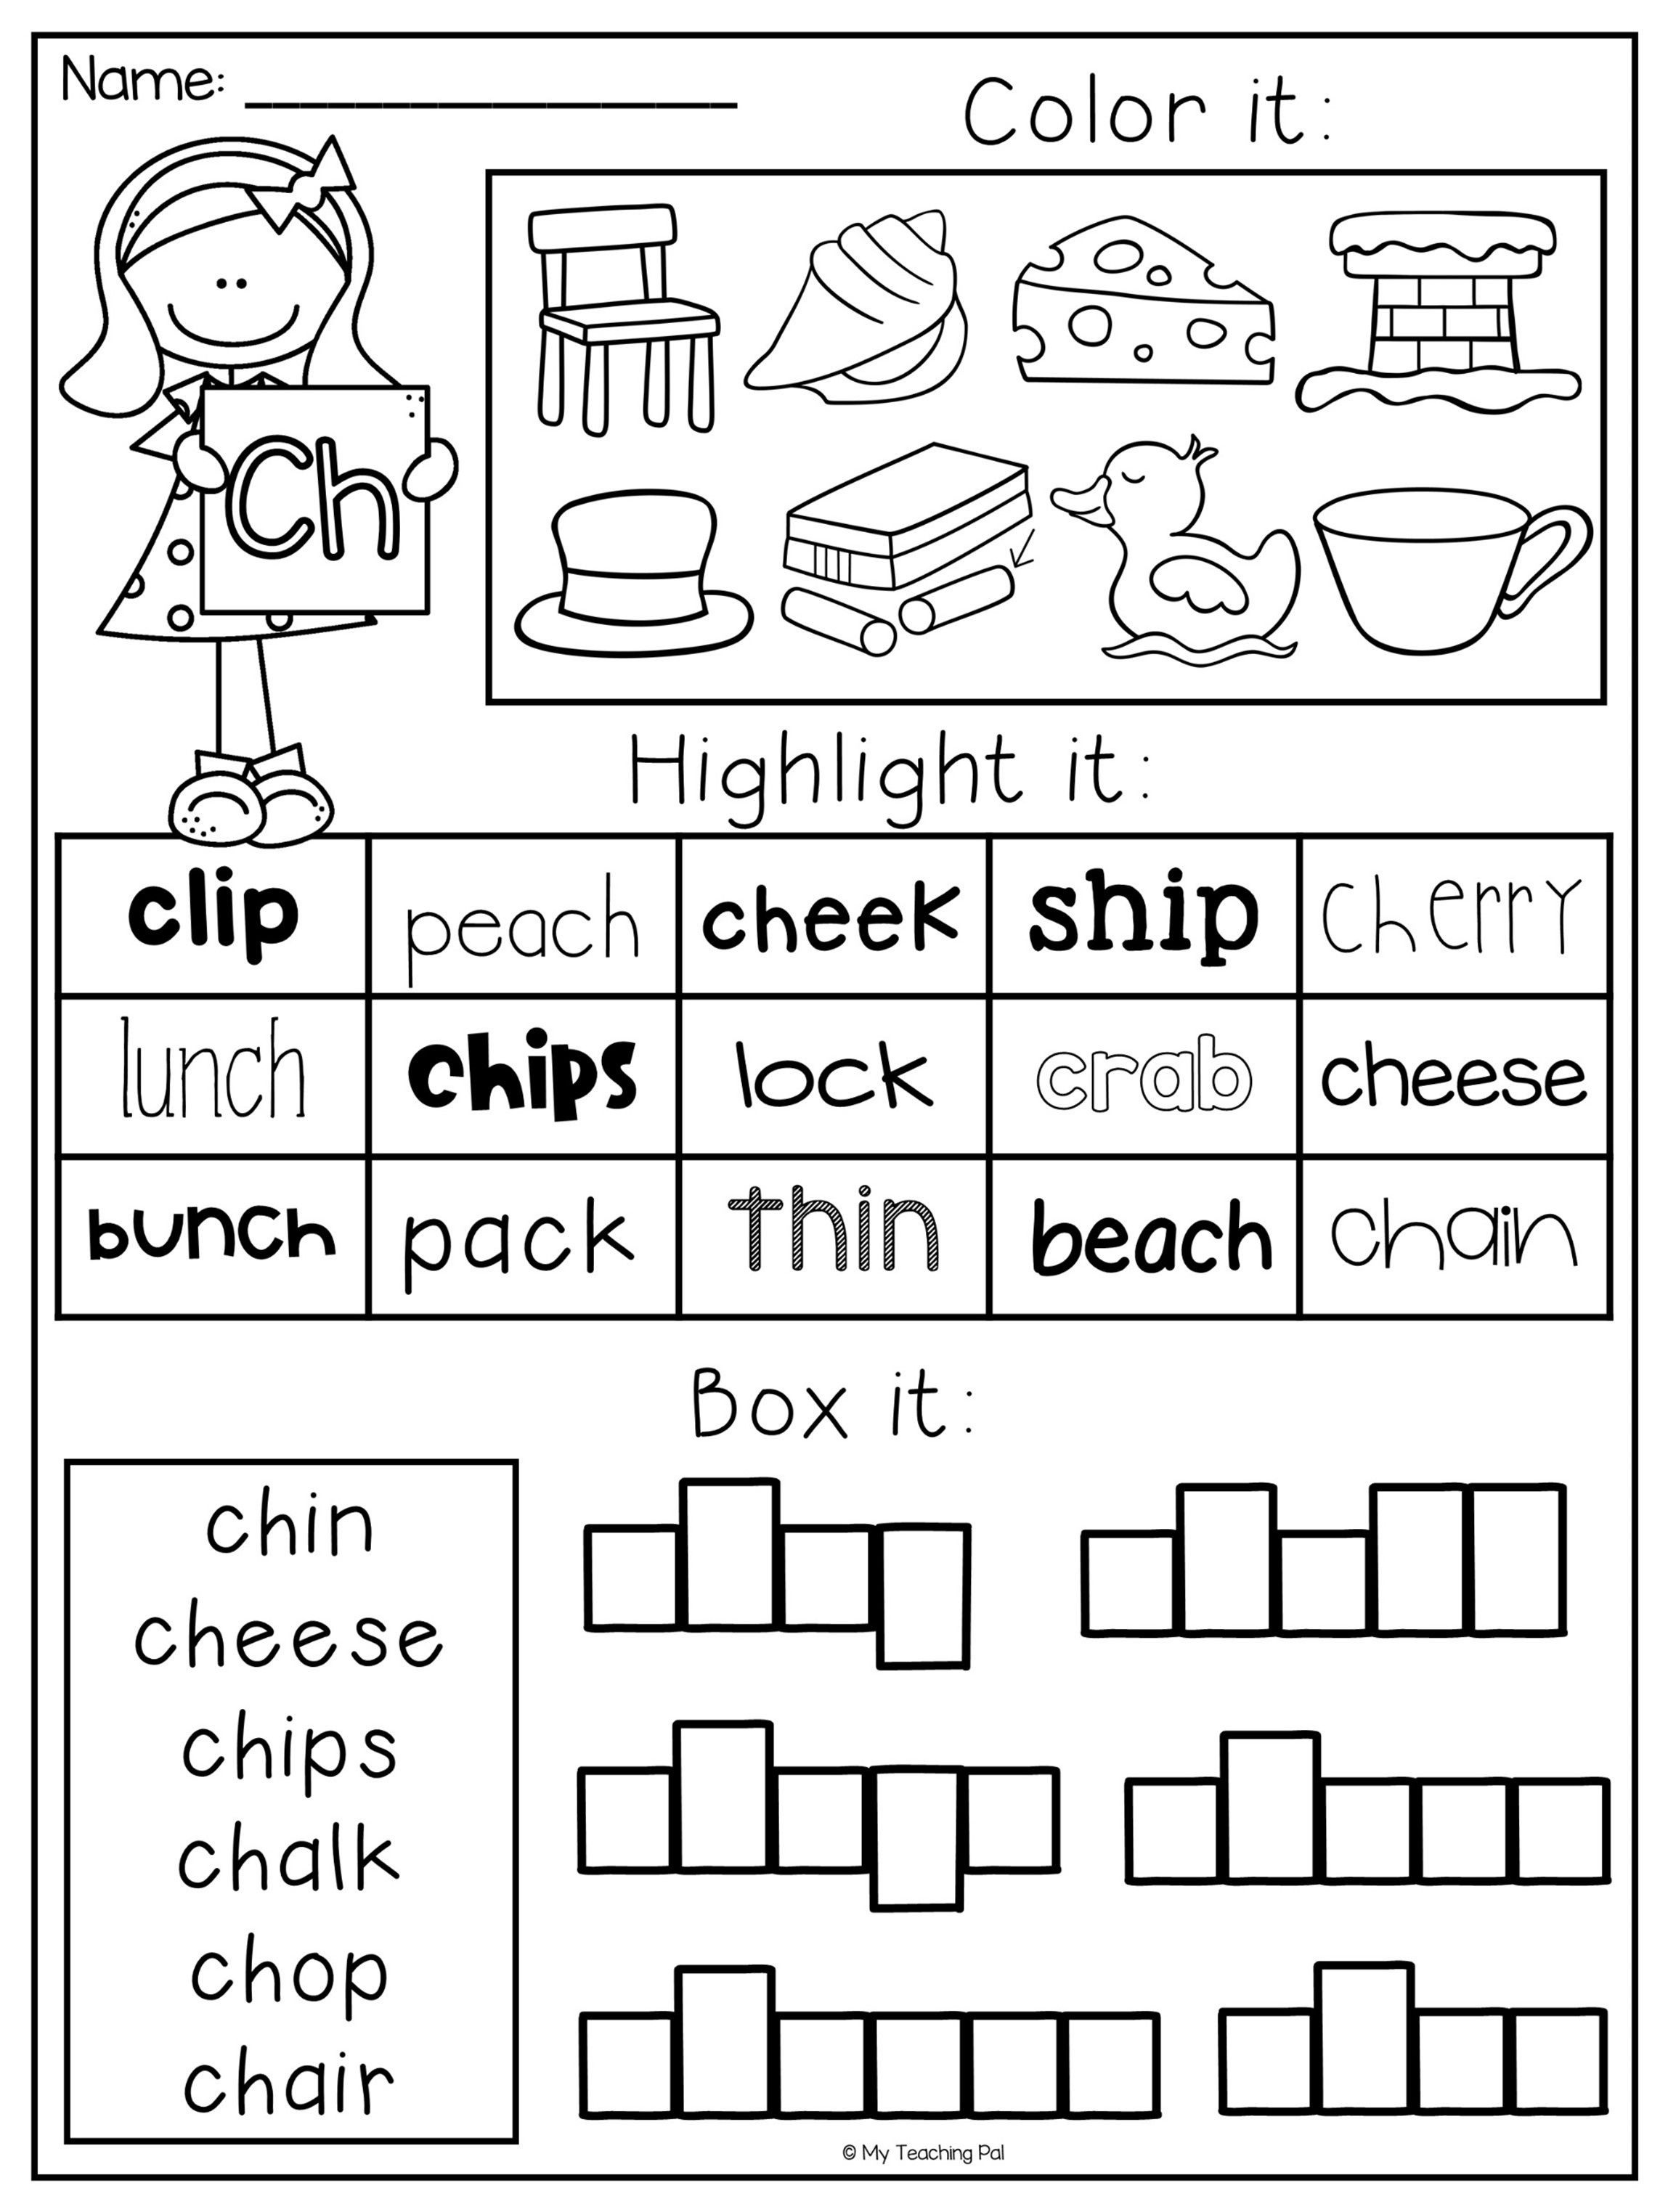 Ck Worksheets for 1st Grade Ch Digraph Worksheets